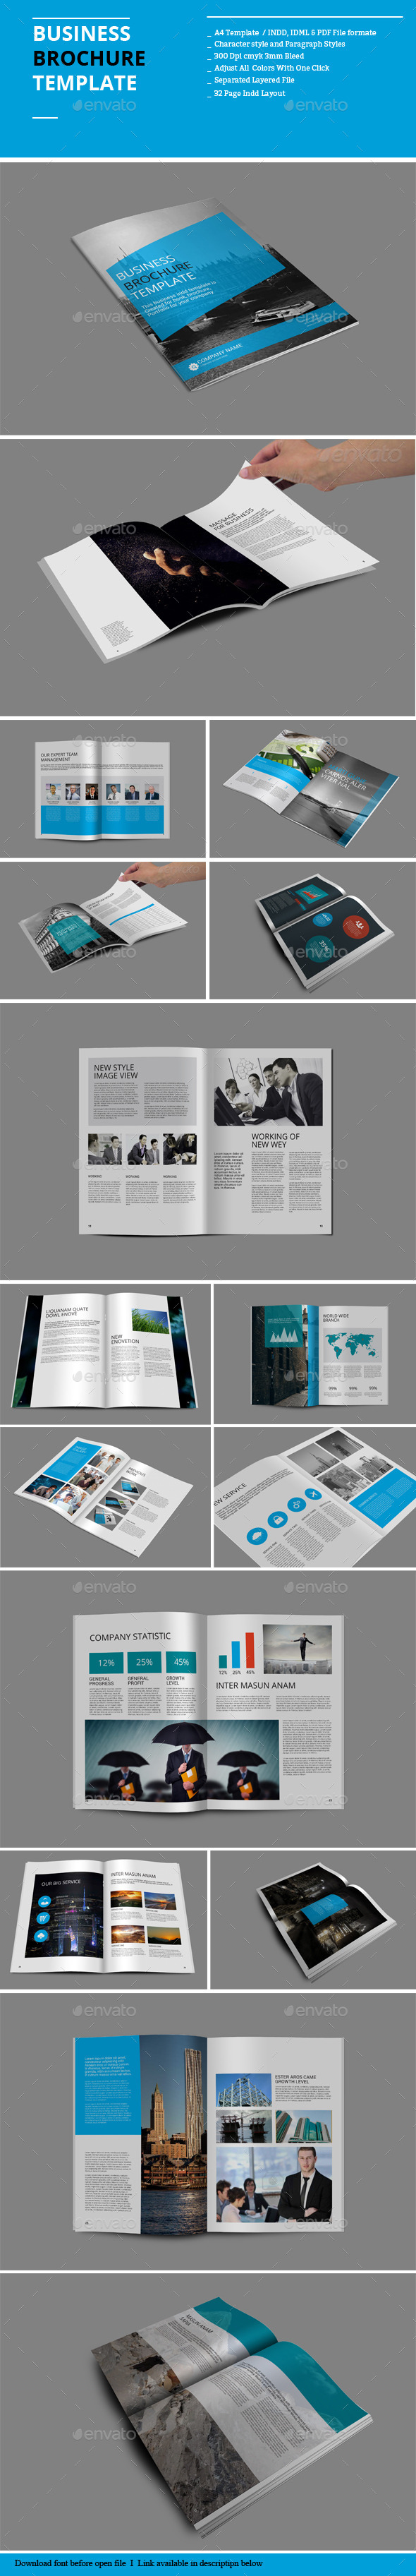 GraphicRiver Business Brochure Templates 8890024